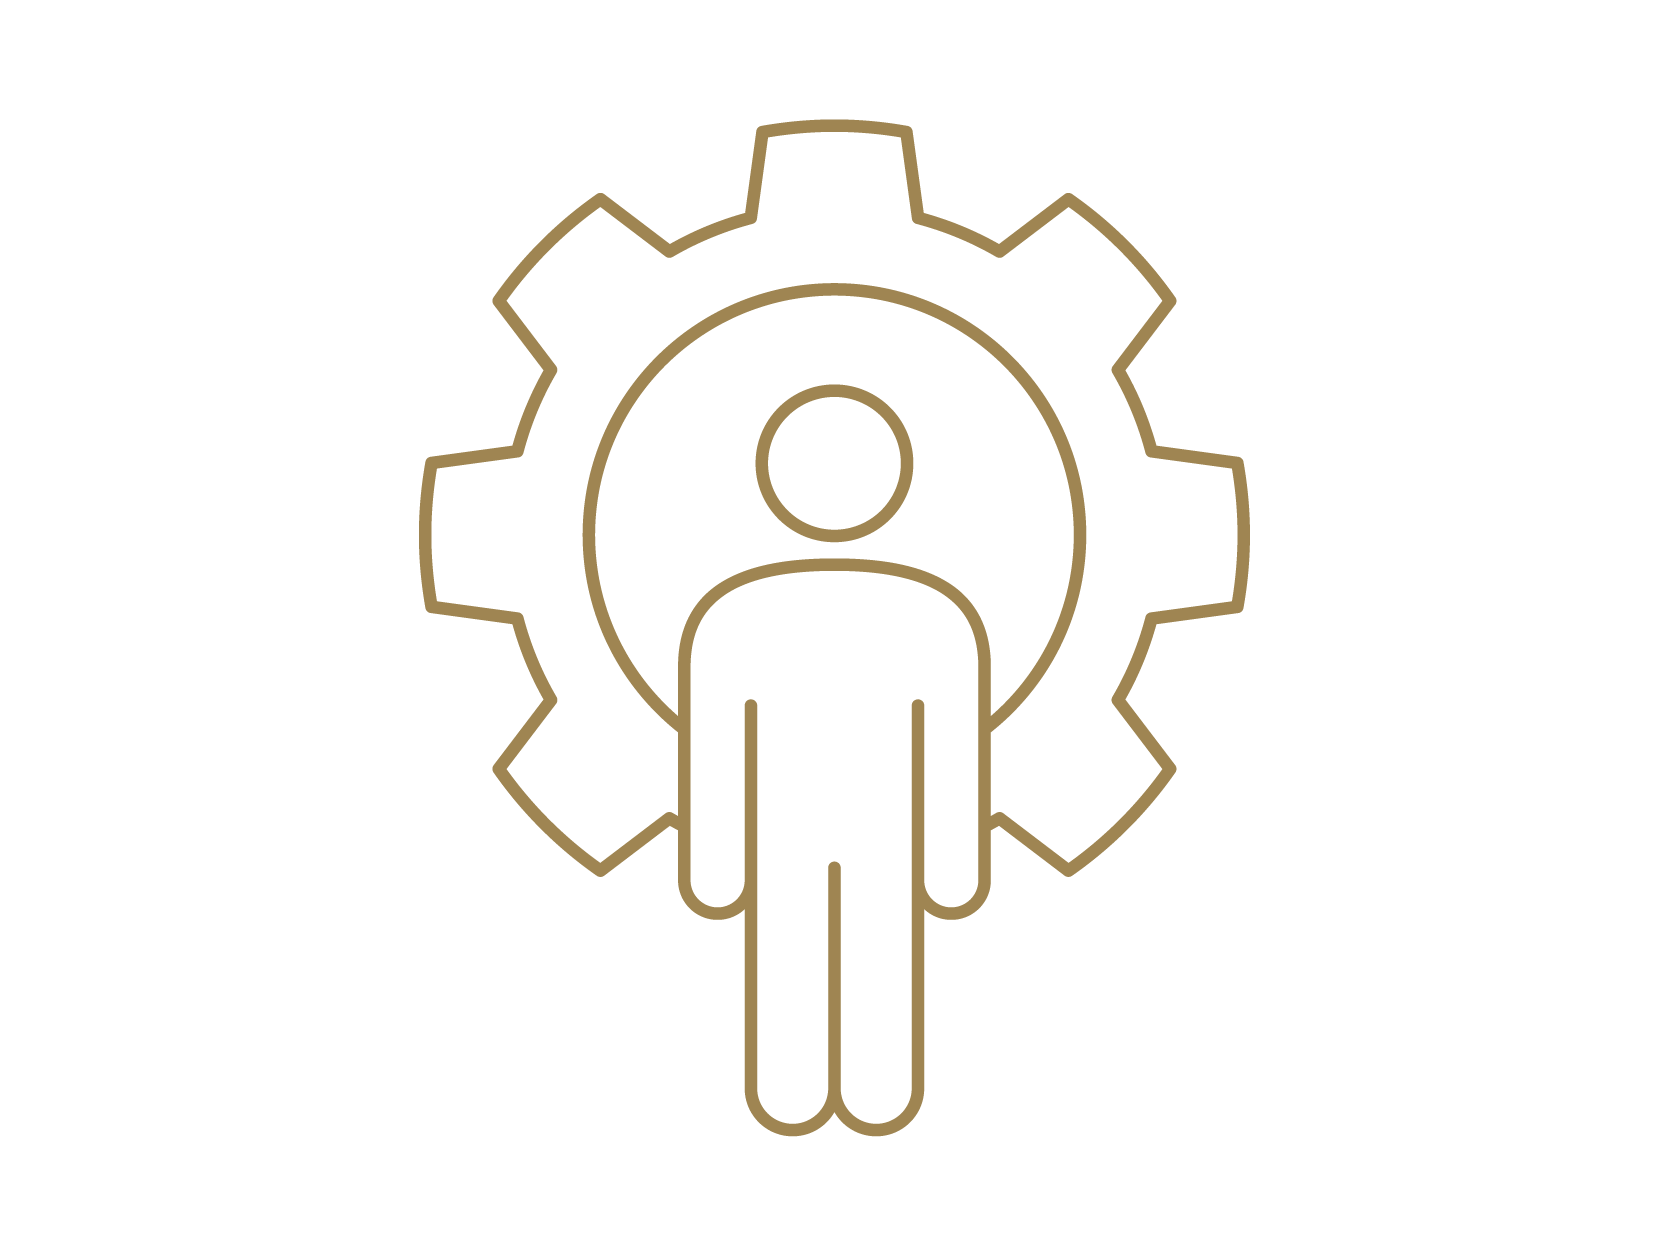 Icon of a person standing in front of a gear